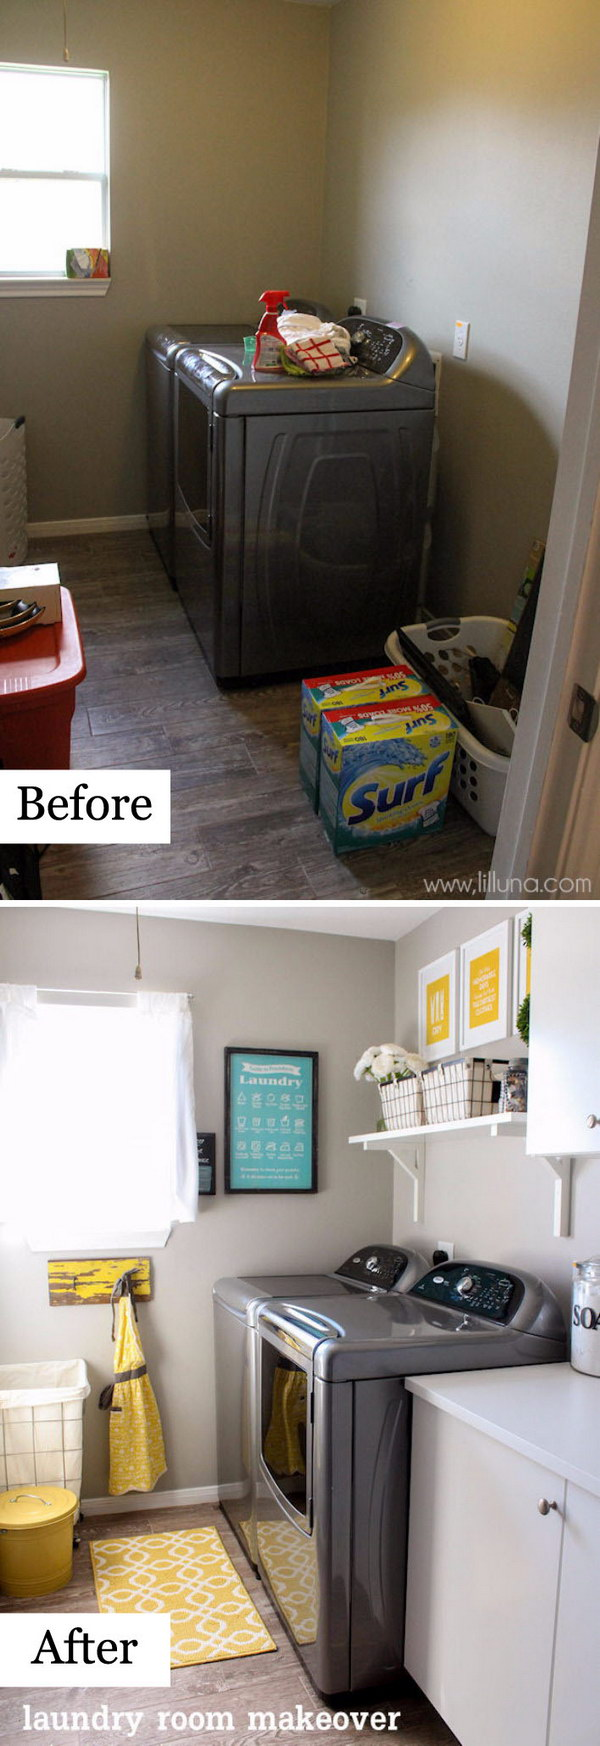 Laundry Room Reveal With a Brighter Wall Paint, Cheery Hints of Yellow, and a Handy Wall mounted Shelf.